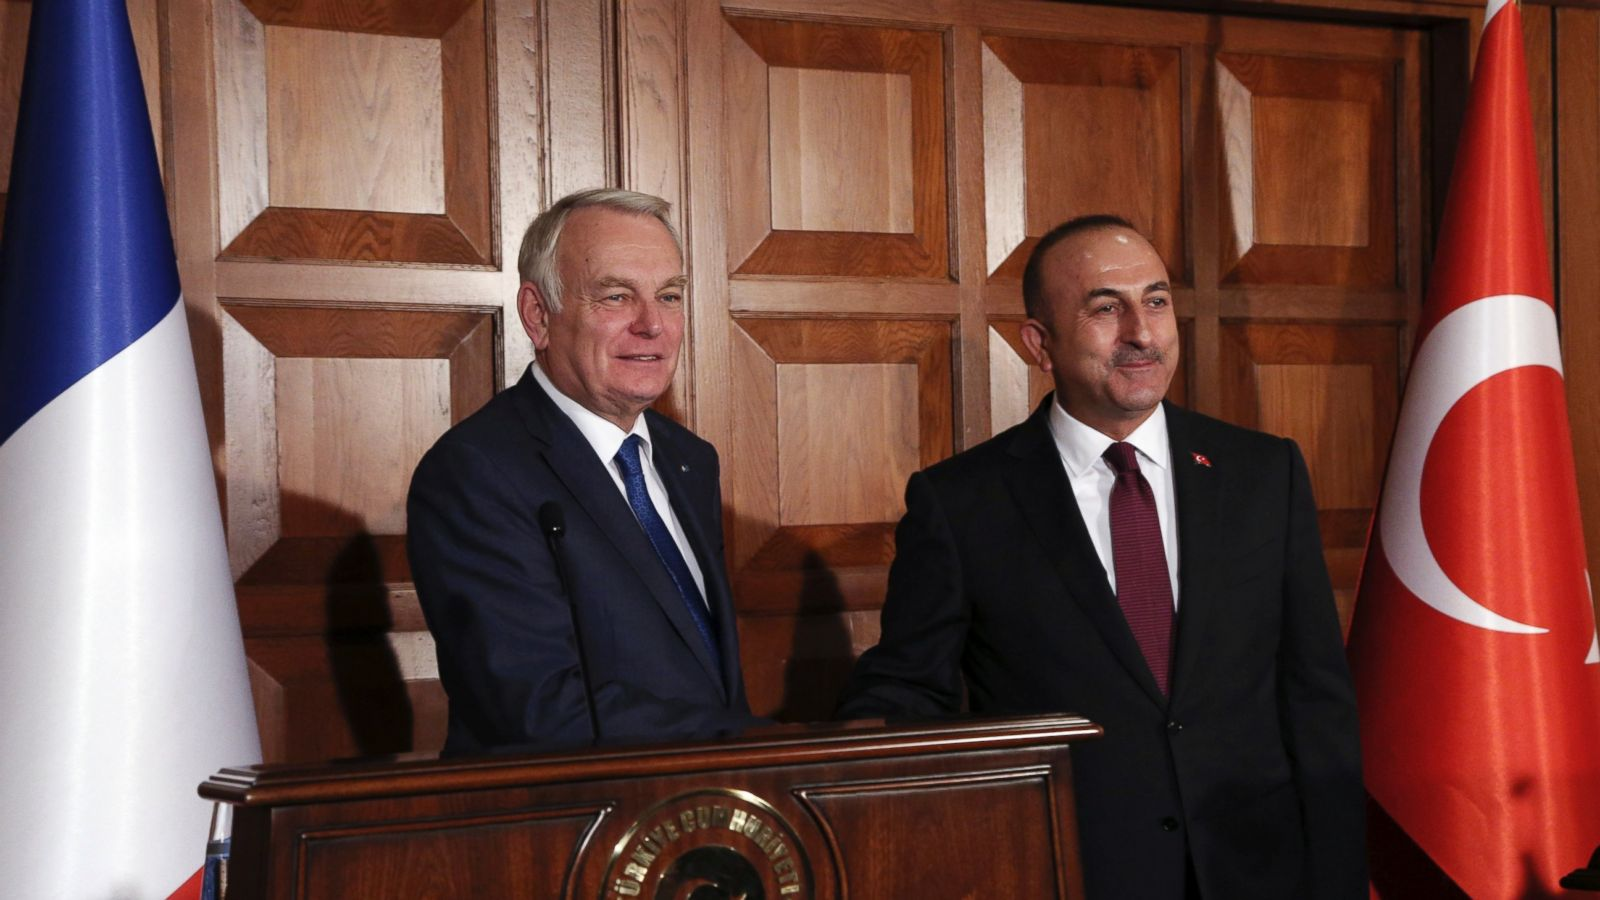 France's Foreign Minister Jean-Marc Ayrault, left, and his Turkish counterpart Mevlut Cavusoglu shake hands after a joint news conference in Ankara, Turkey, Monday, Oct. 24, 2016. Ayrault has called for an end of the